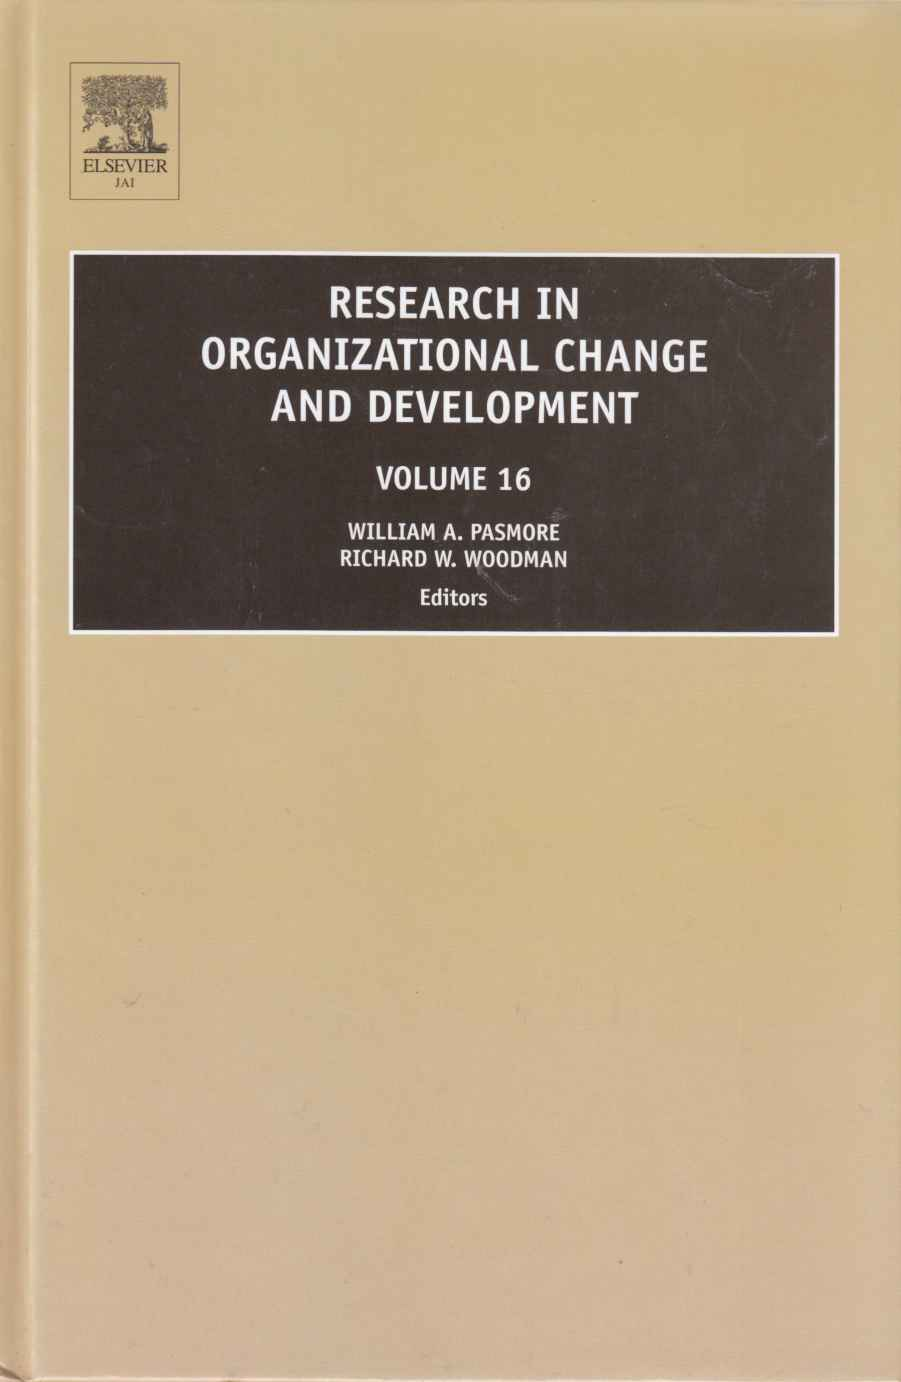 Image for Research in Organizational Change and Development Volume 16